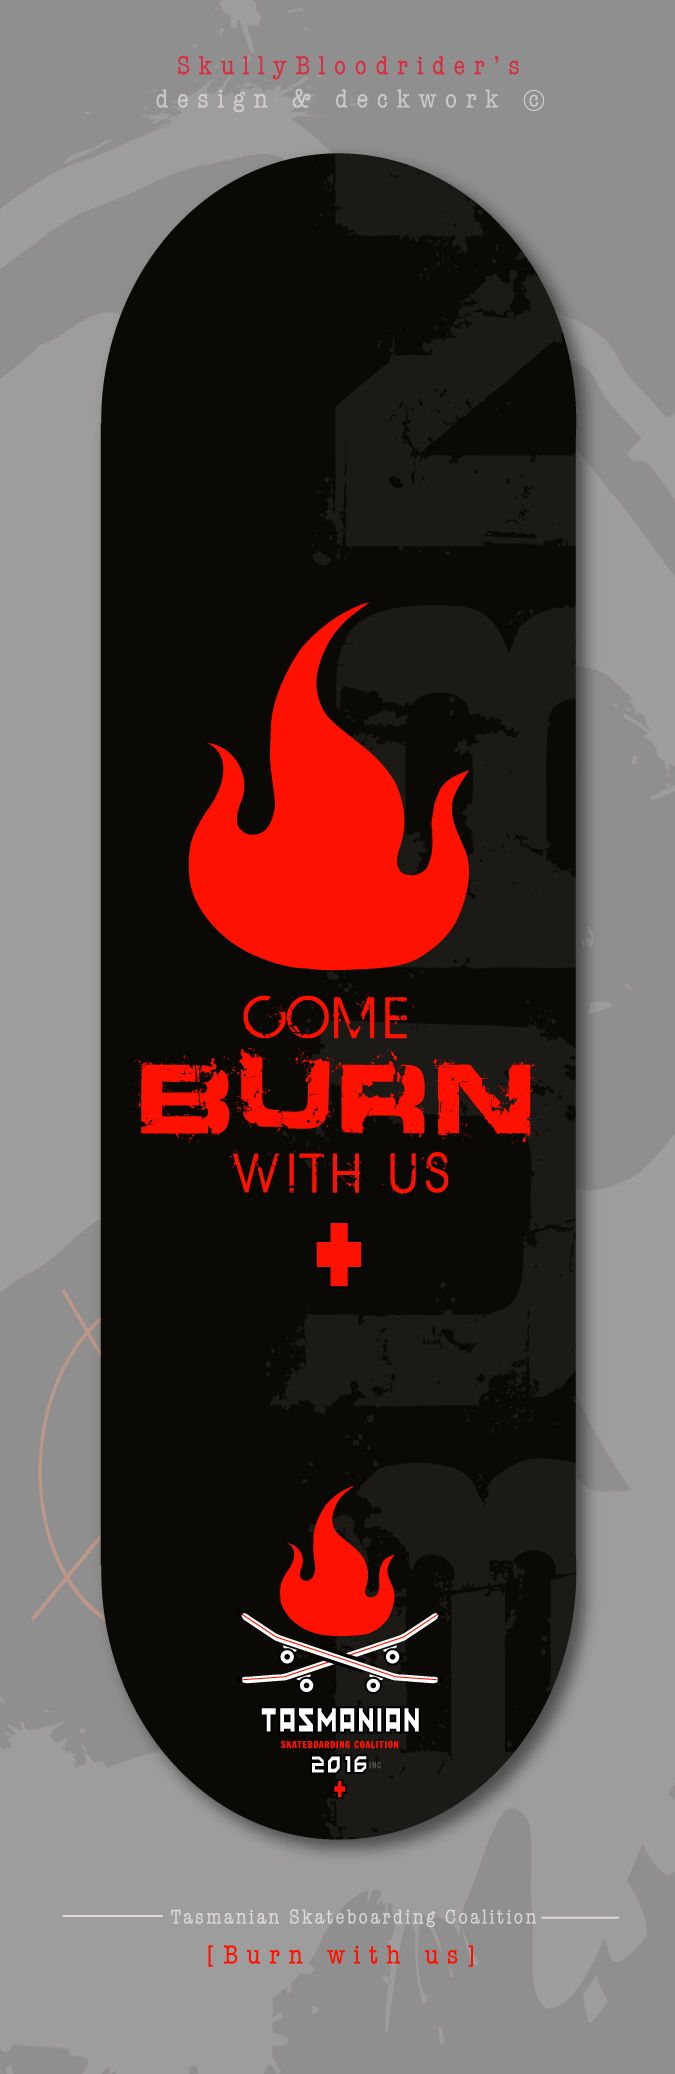 'Come burn with us'... deck design, my second favorite in the series so far using layers & watermarks to give the board graphic depth SkullyBloodrider. 3.5.2016.